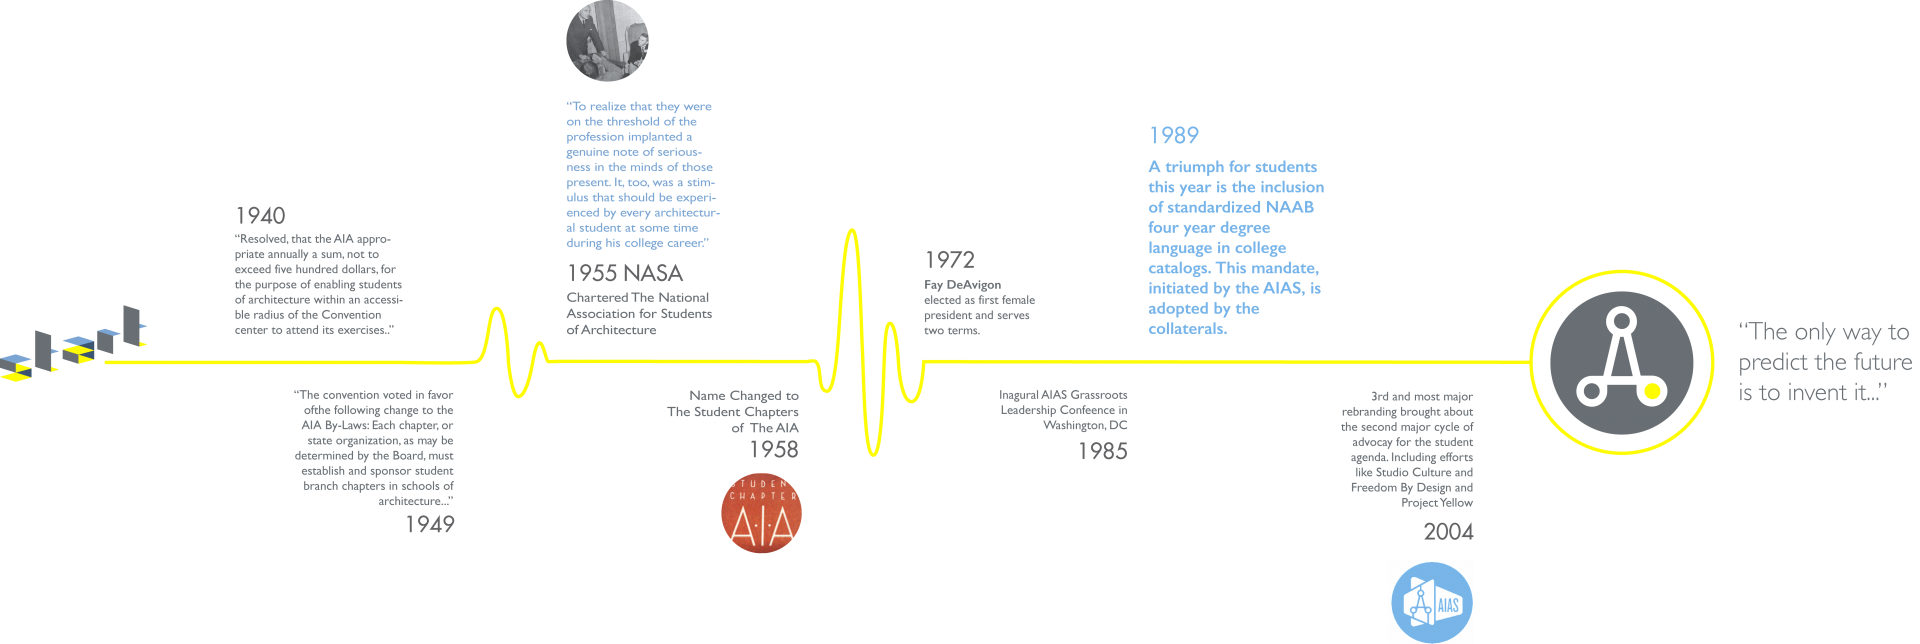 AIAS Timeline